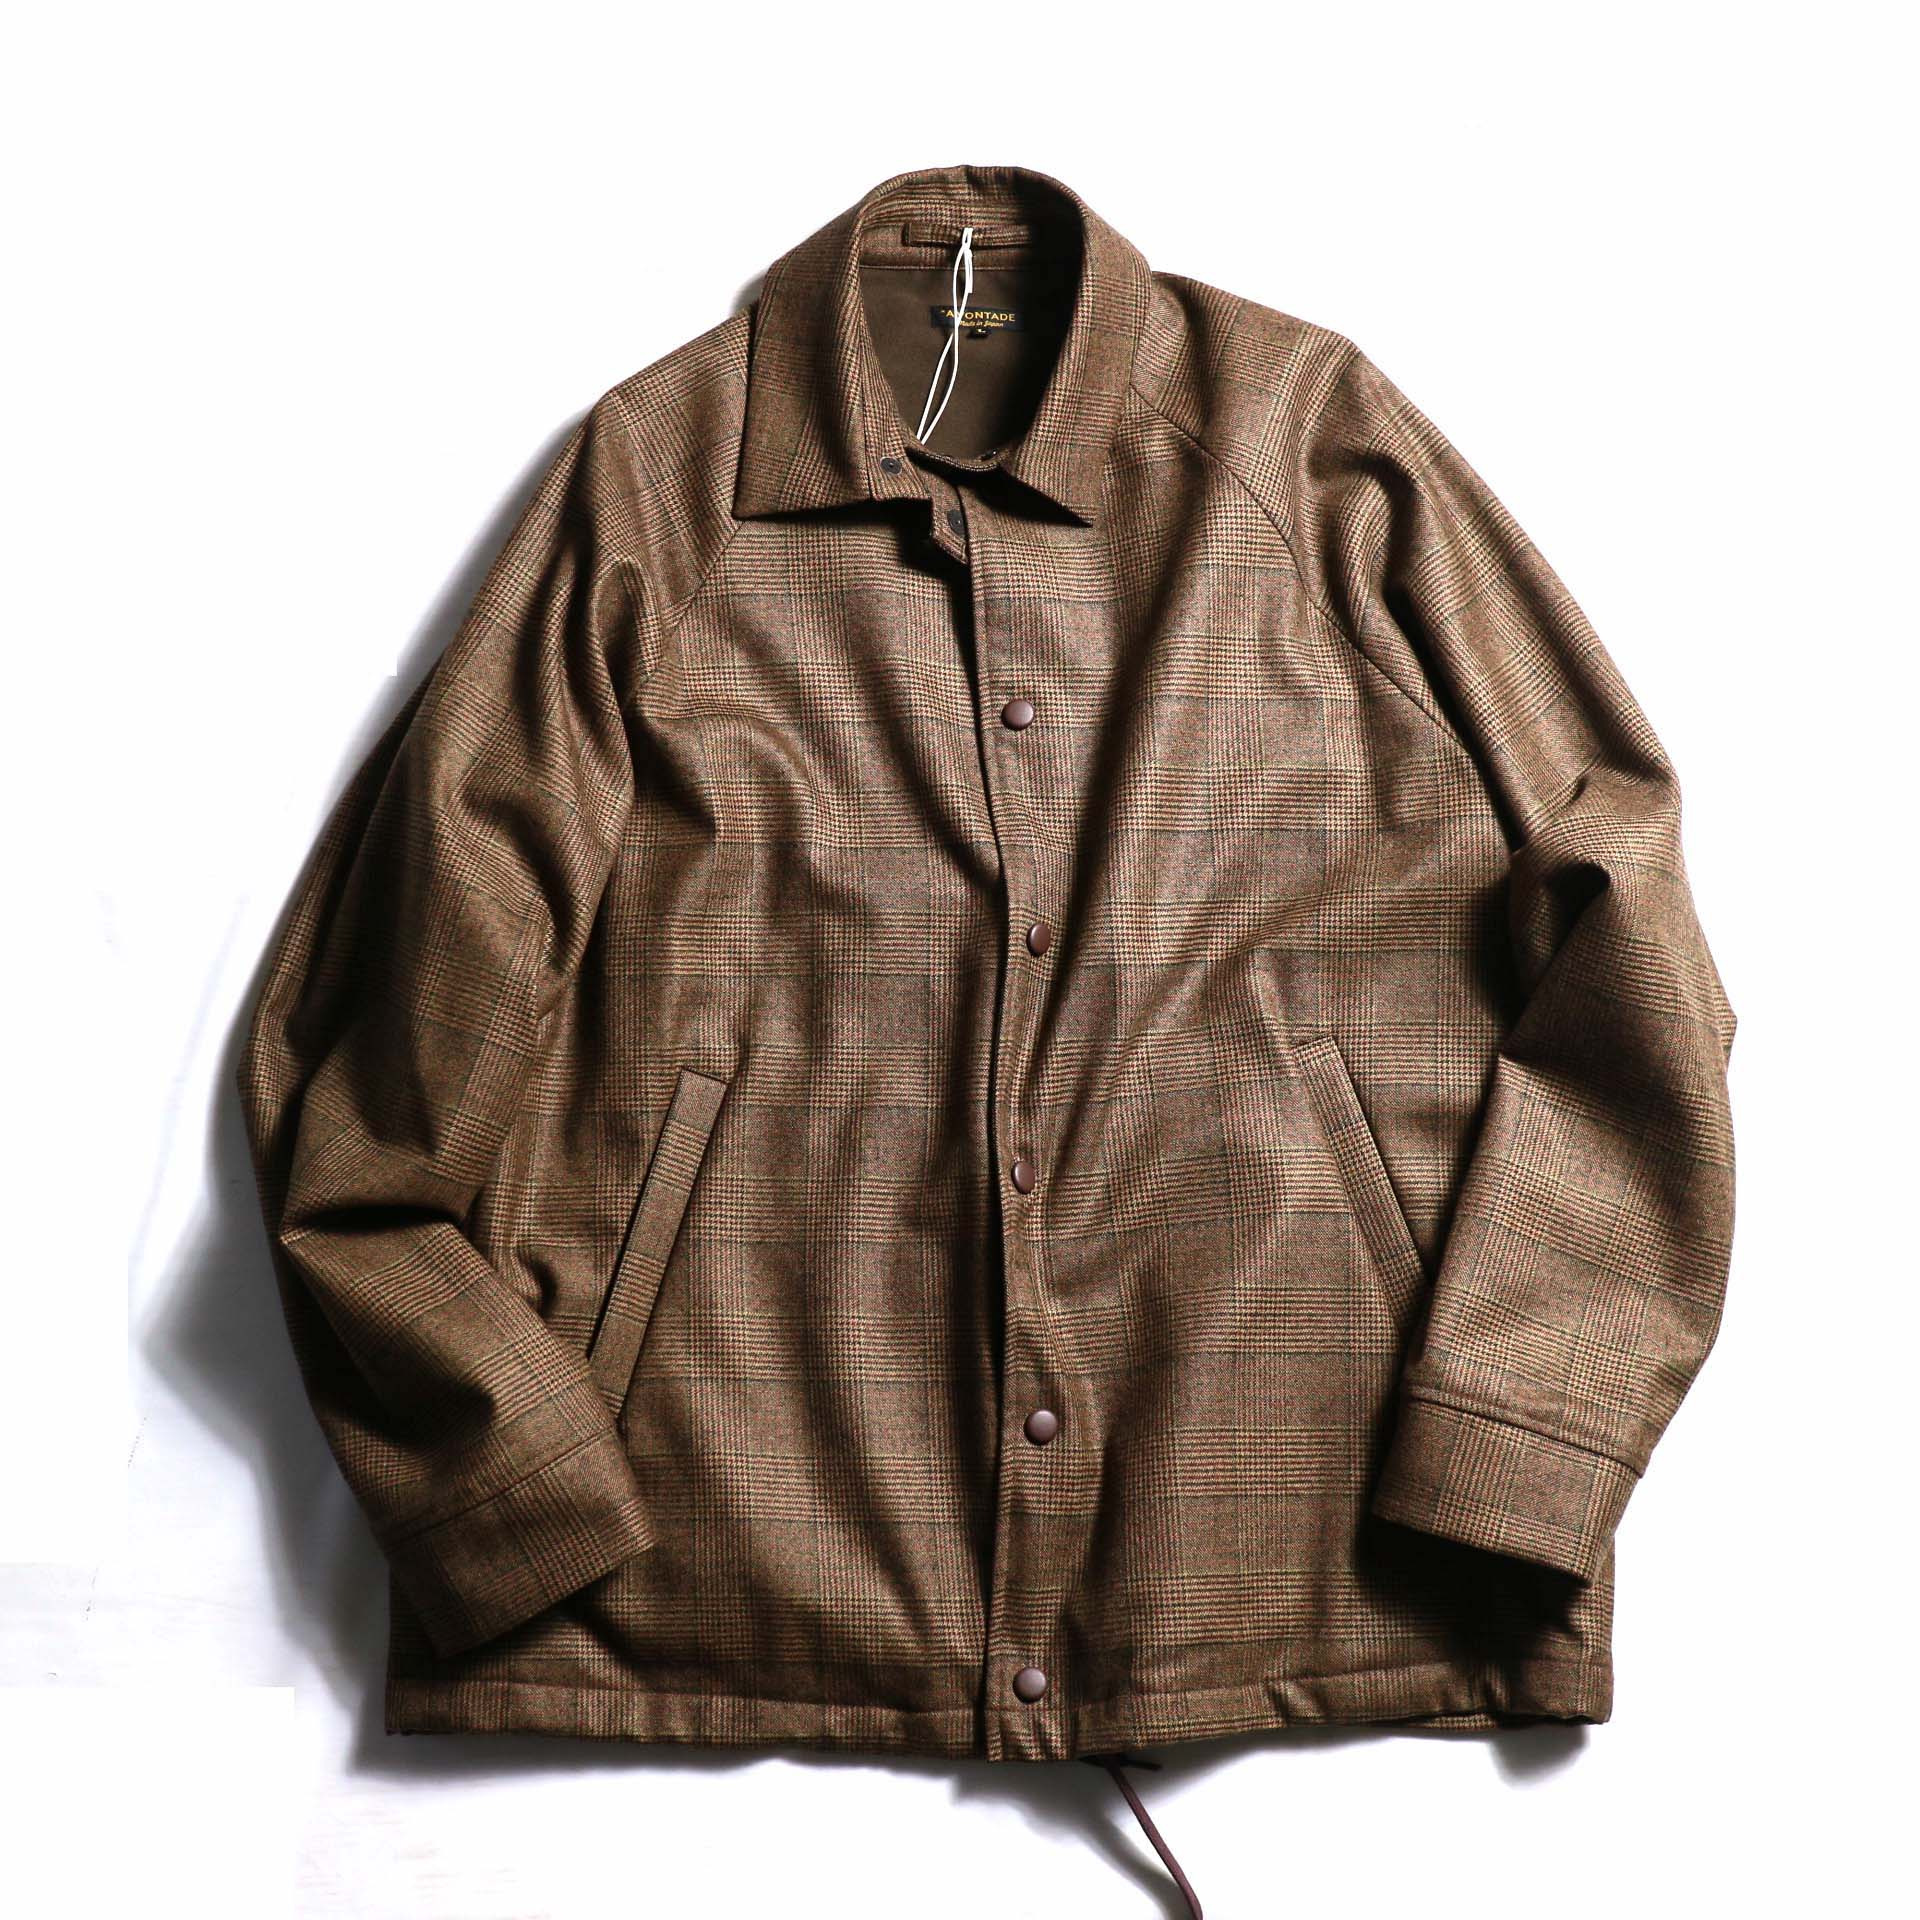 A VONTADE / Wool Coaches Jacket - BROWN GREN CHECK